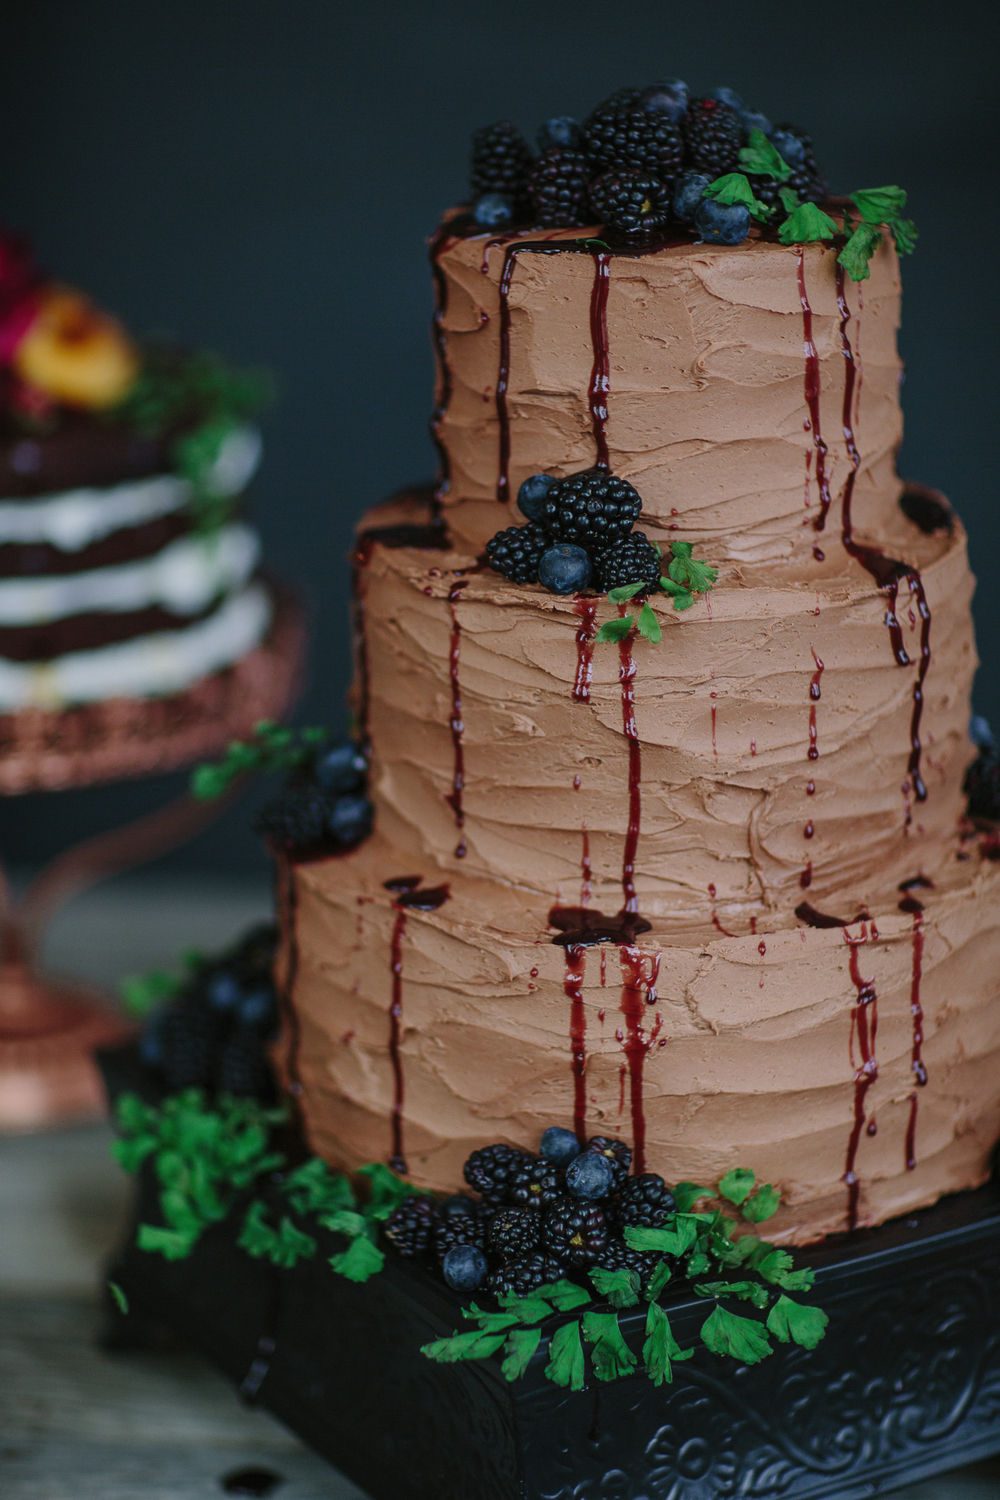 Chocolate wedding cake by Bespoke Cakery, Co. in Grand Junction, Colo.